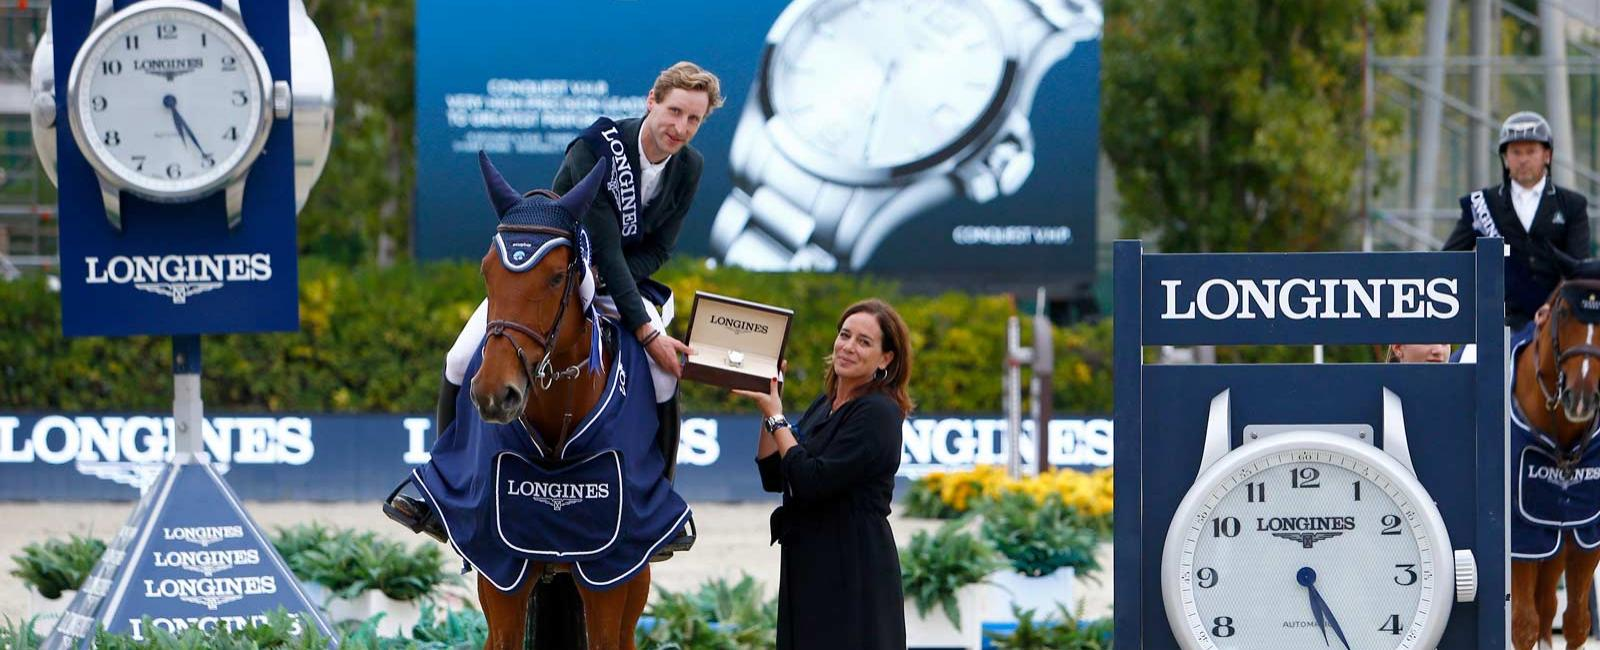 Longines Cup of the City of Barcelona;Jumpin;2017